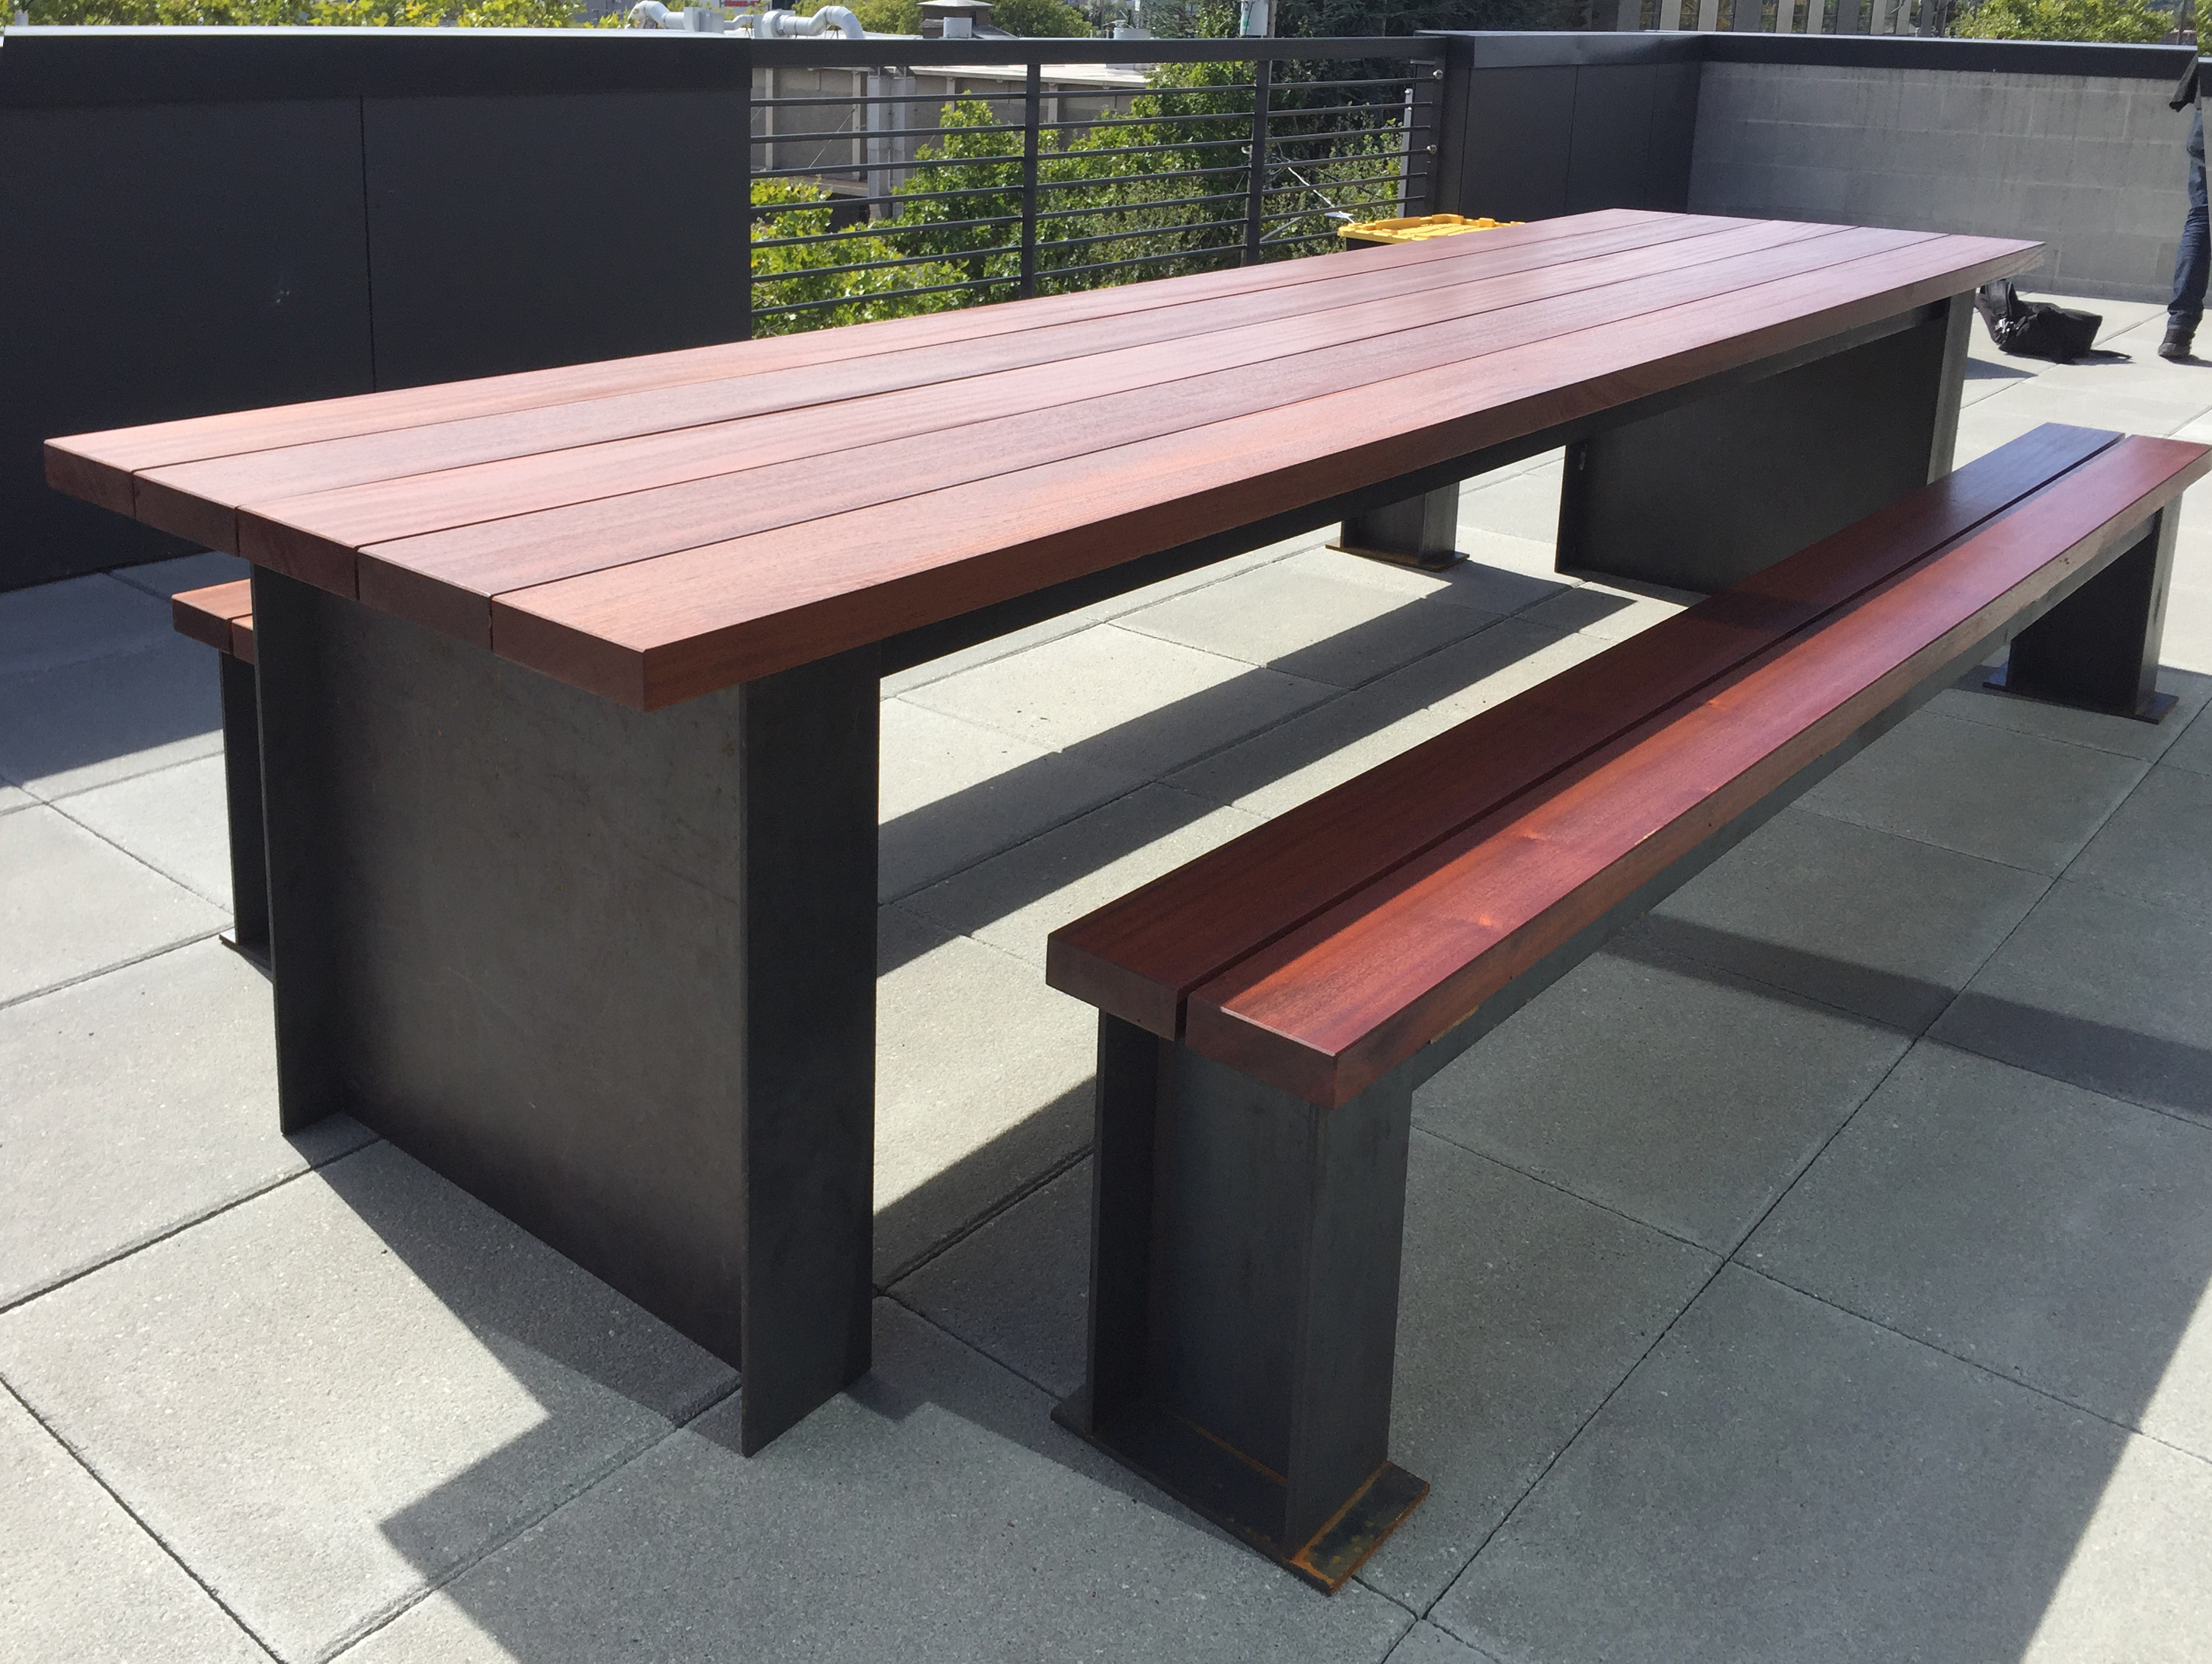 Outdoor Steel and Wood Table